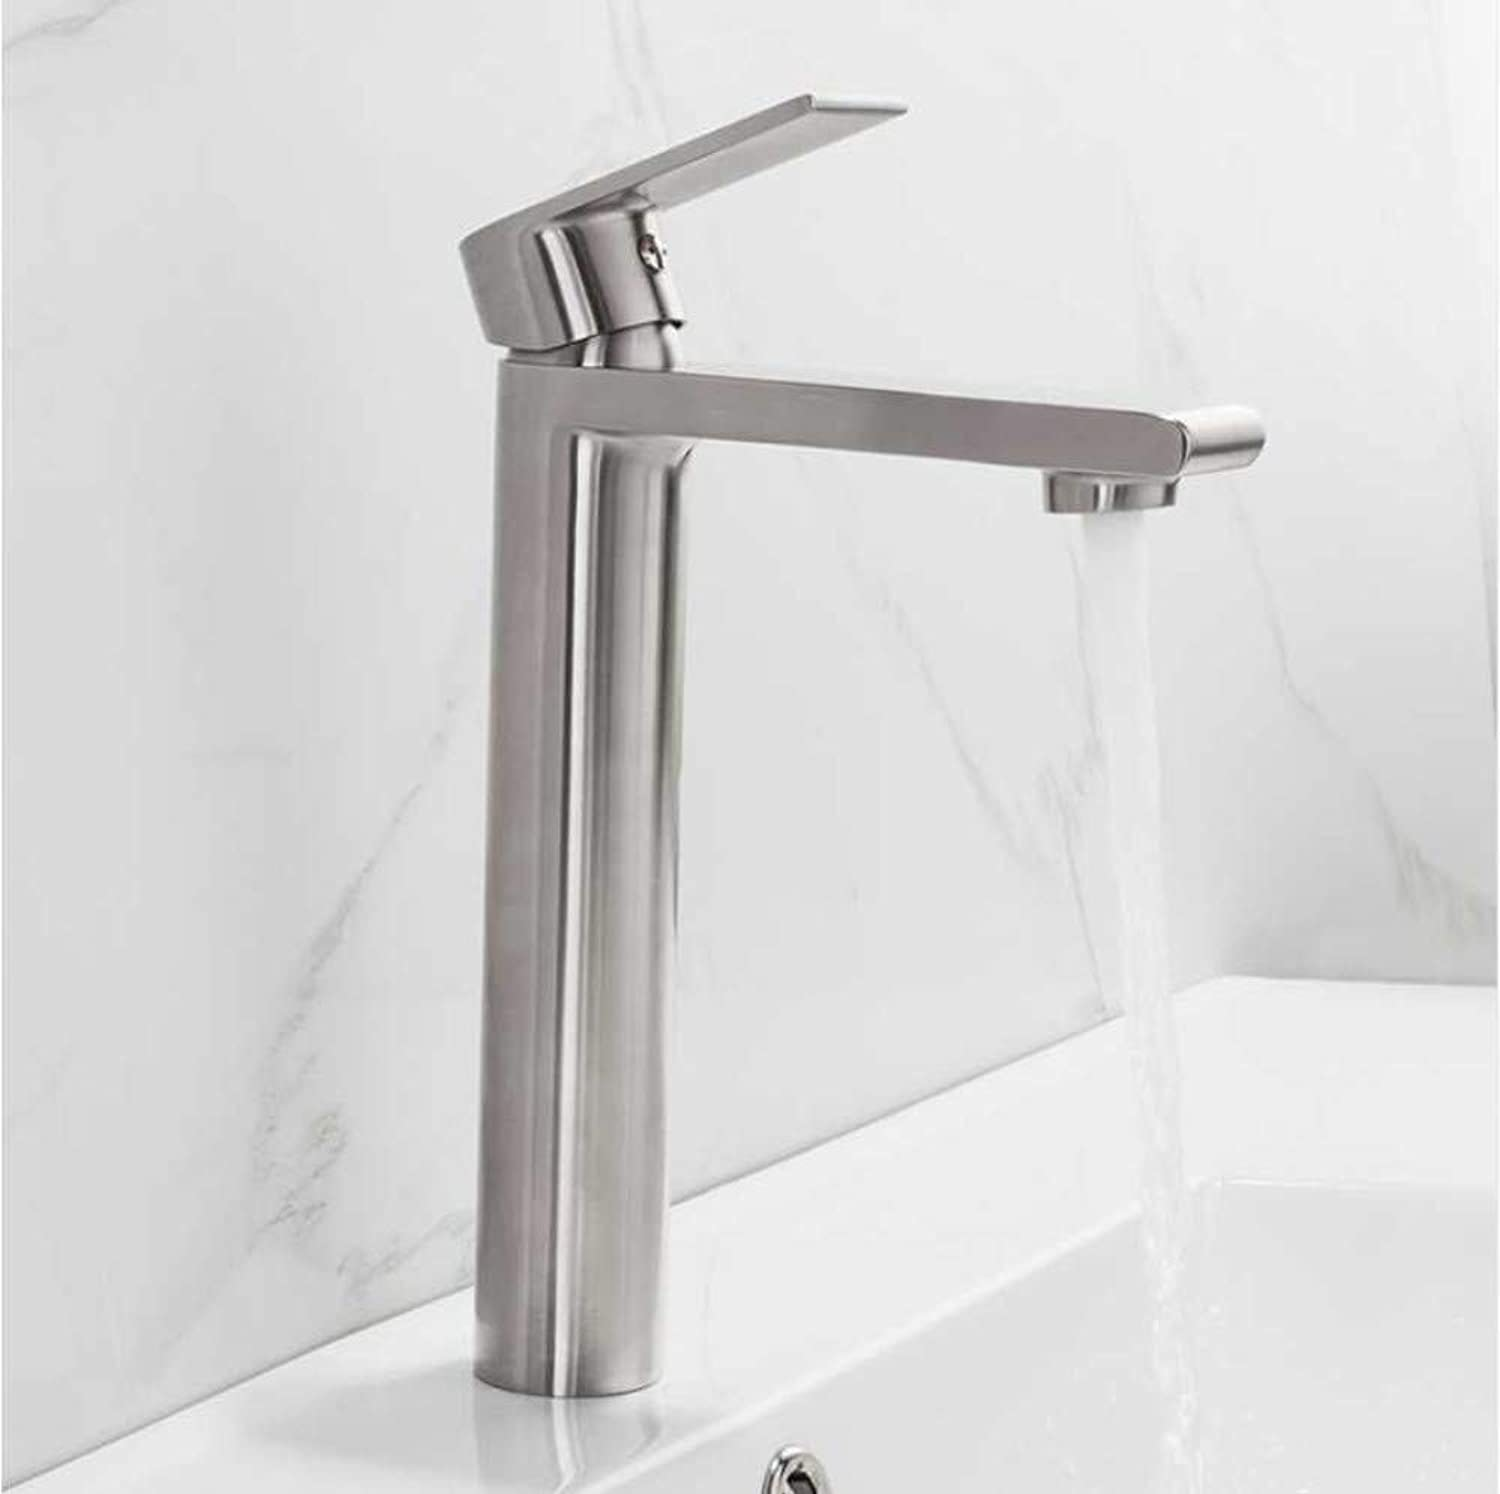 Jukunlun Basin Faucet Basin Mixer Tap Mixer Stainless Steel Water Sink Sensor Faucets Bathroom Waterfall Faucets